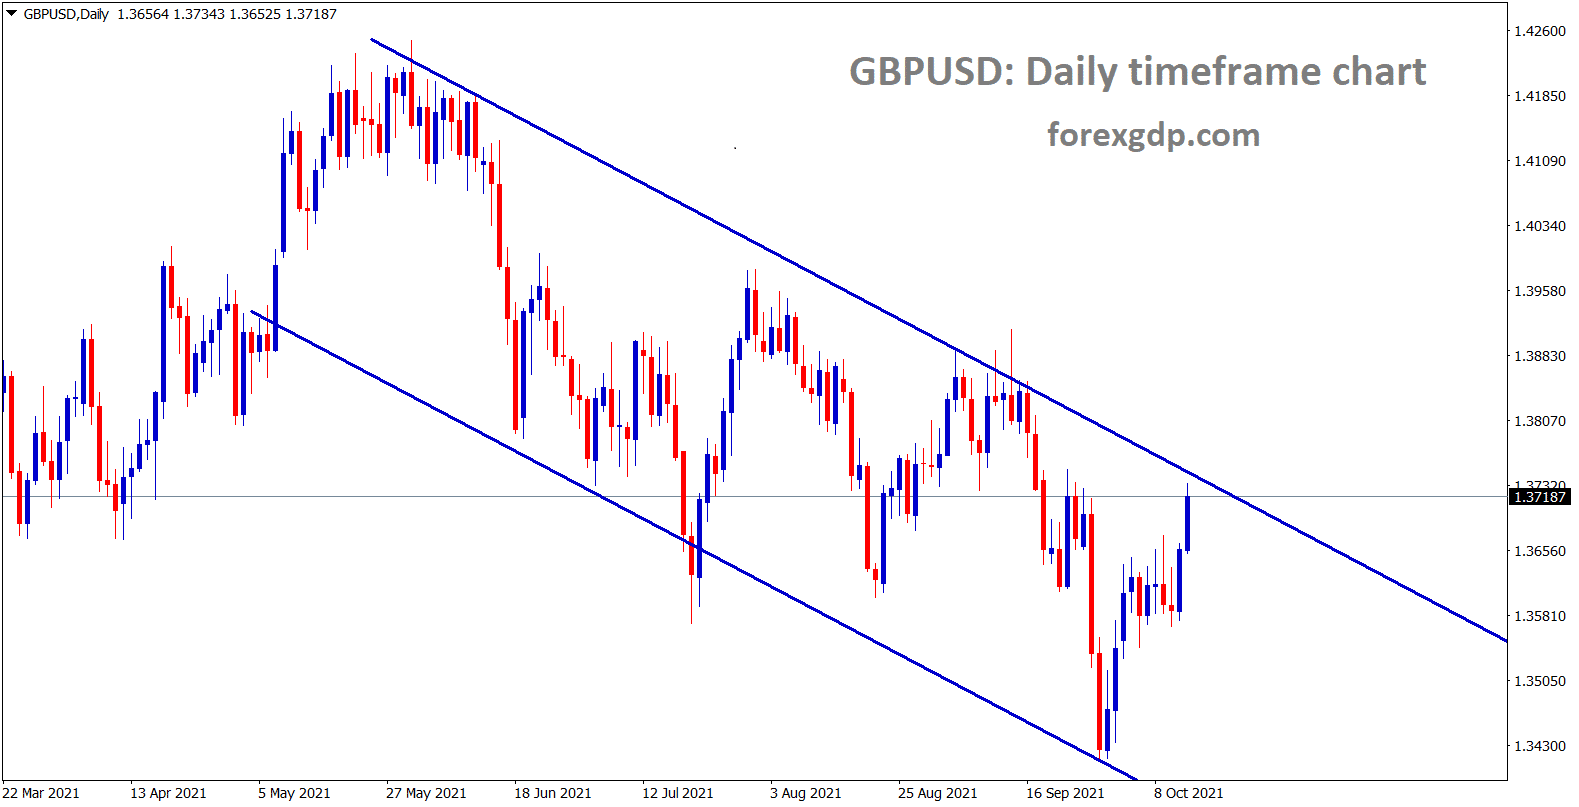 GBPUSD is moving in a downtrend line going to reach the top lower high of the downtrend